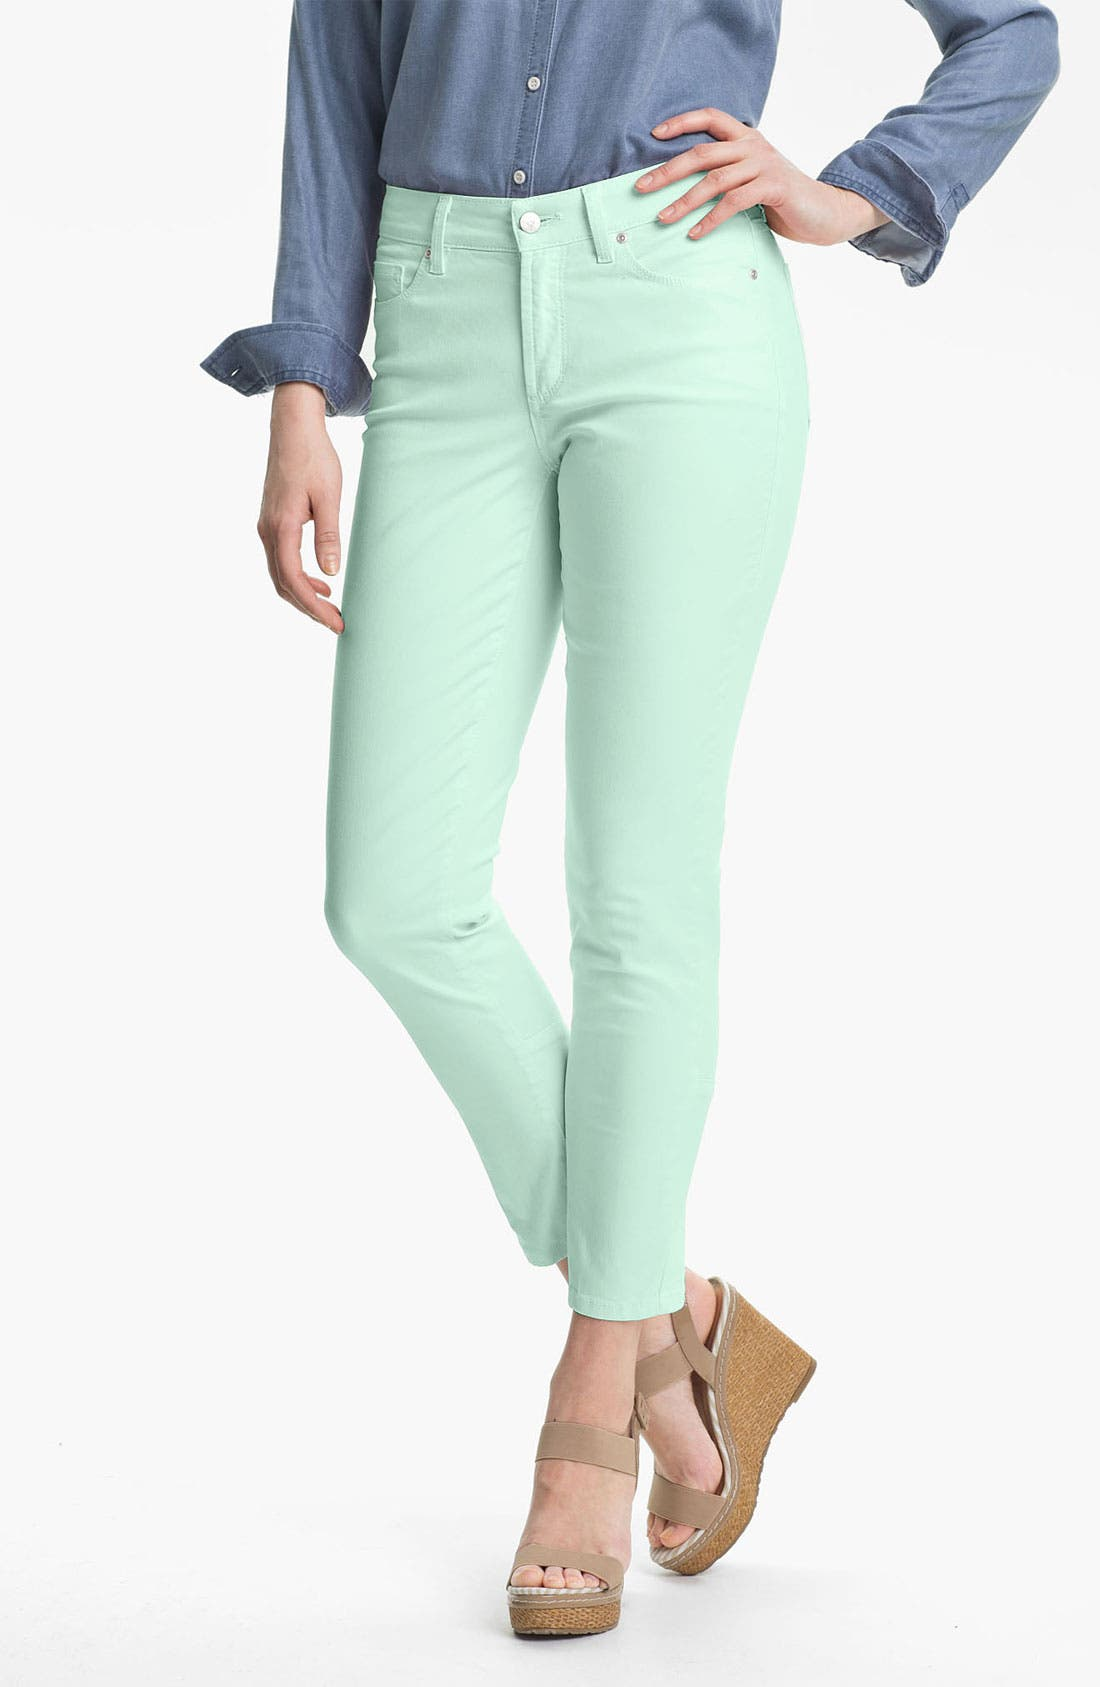 Main Image - NYDJ 'Jill' Fitted Ankle Jeans